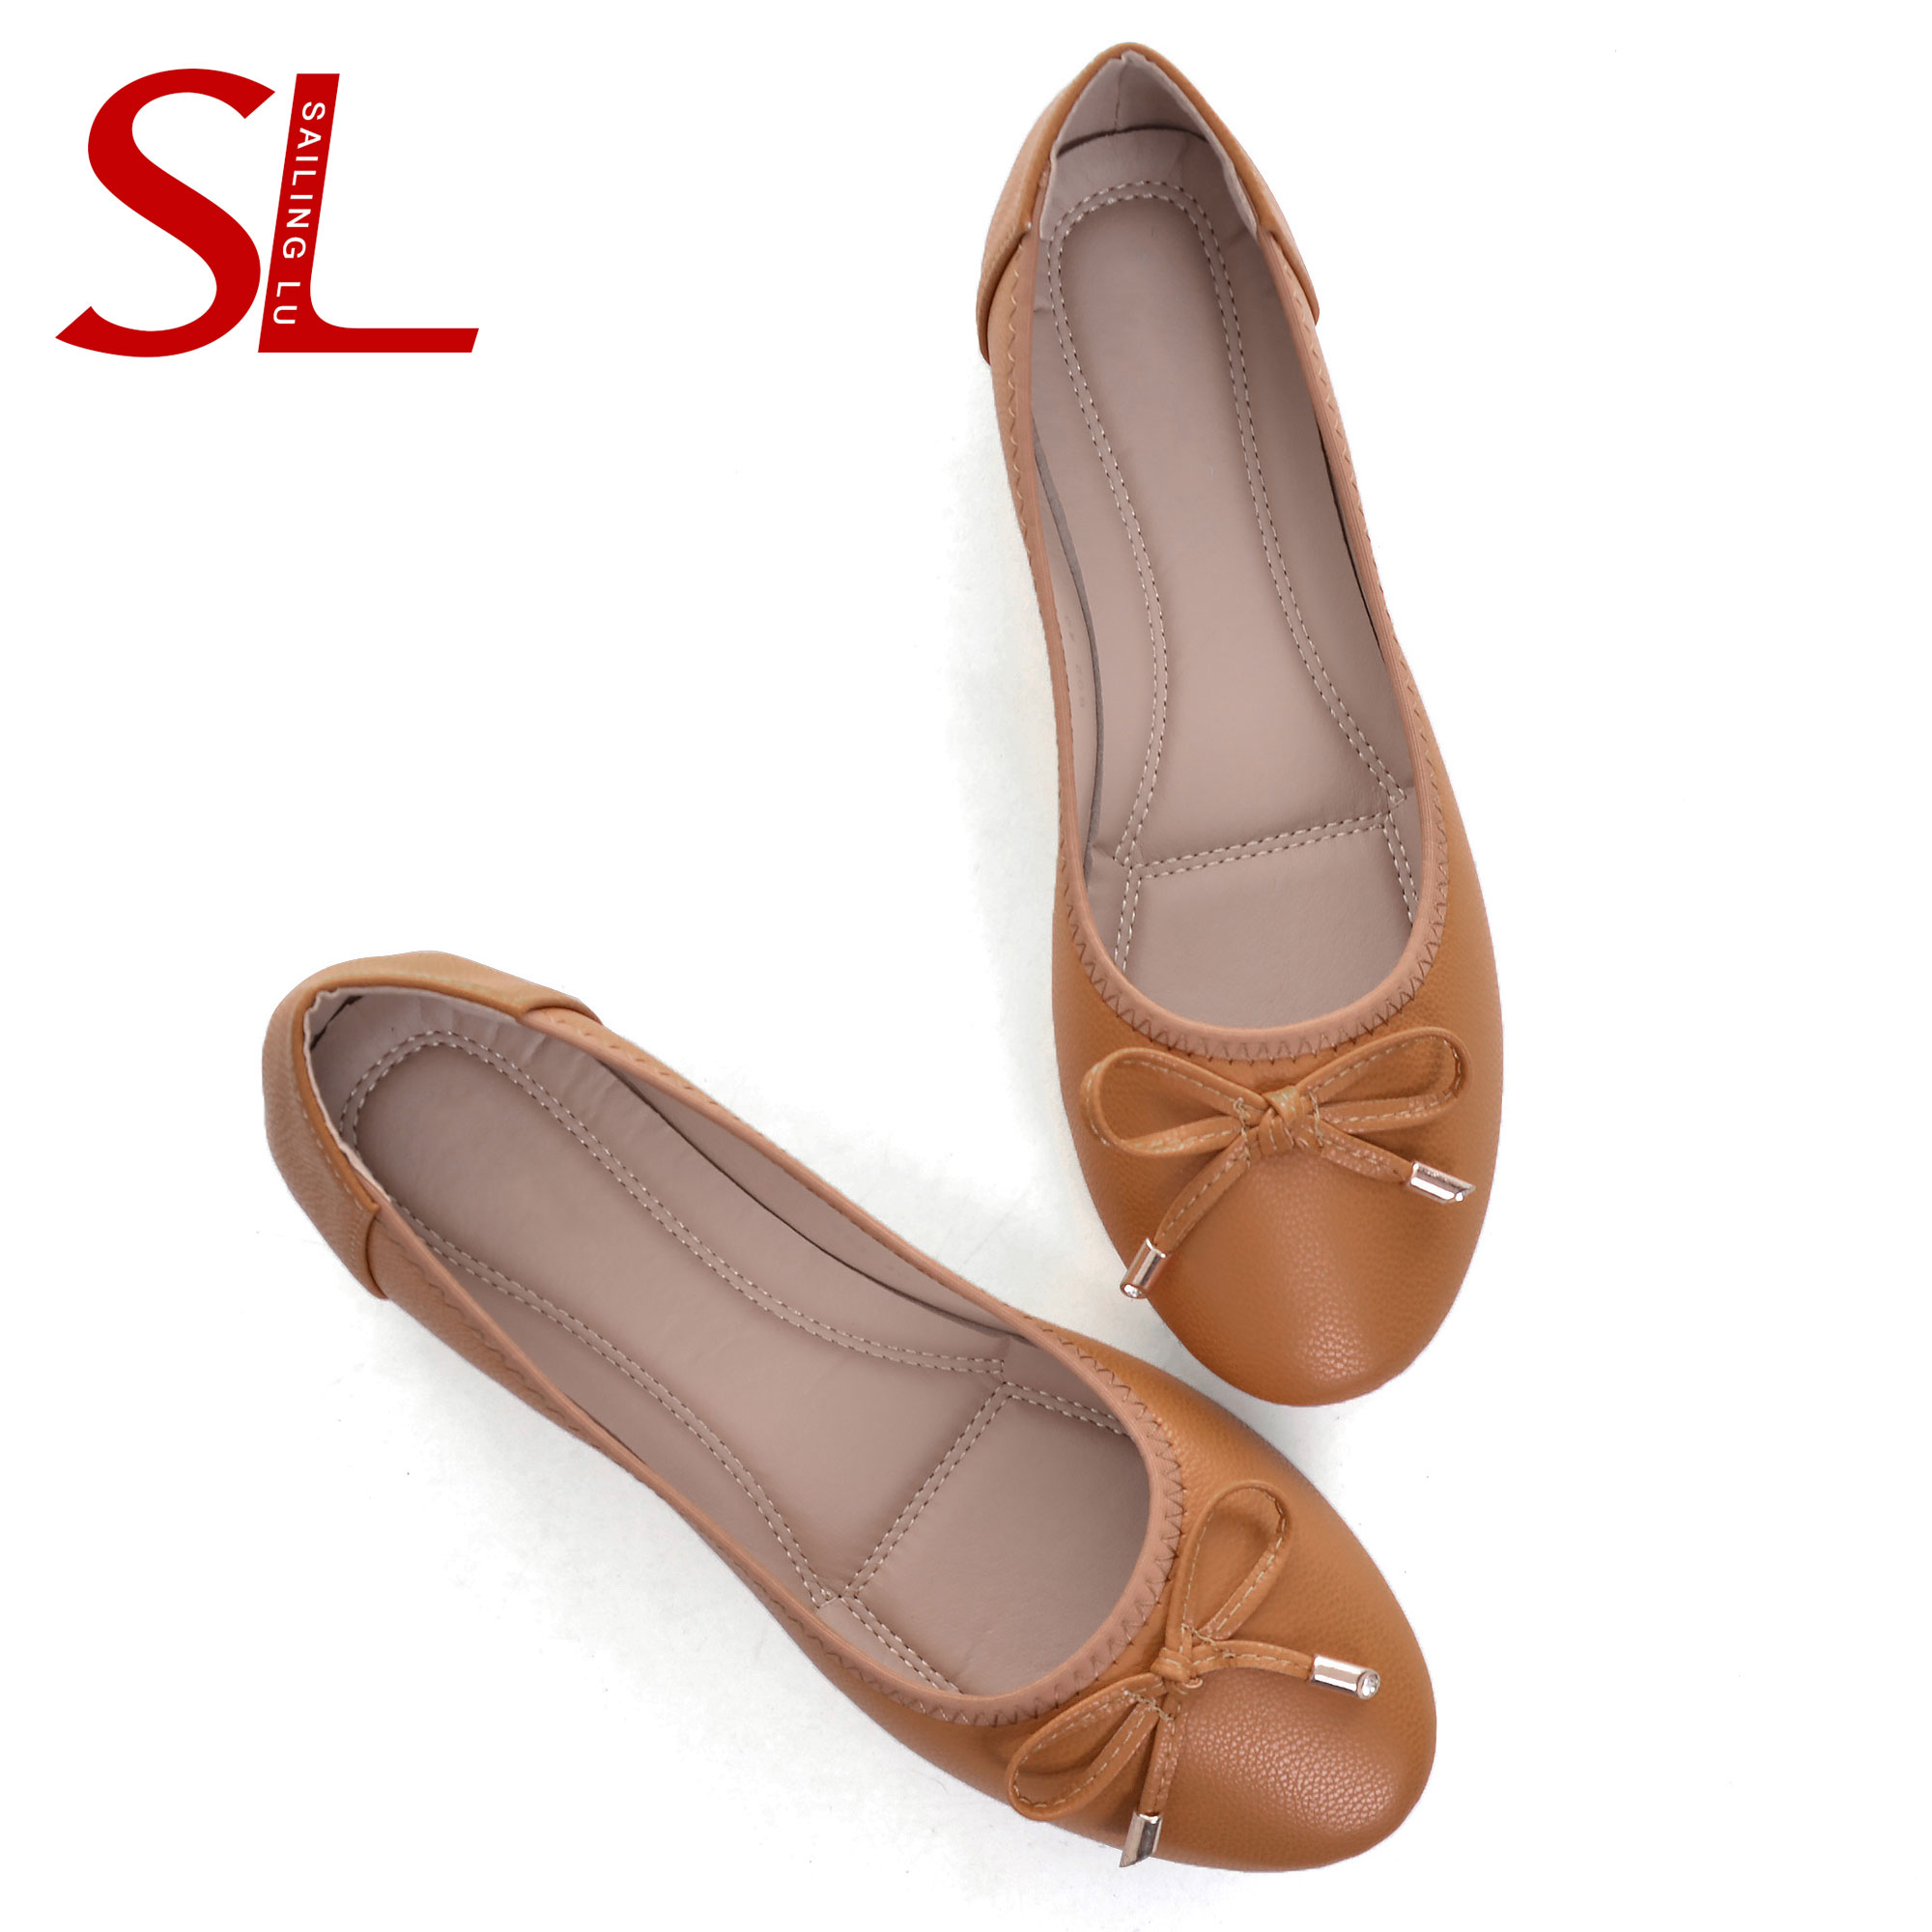 Promote^House-Shoes Ballet-Flats SAILING Cute Loafers Slip-On Women Casual for Comfort Bow-Knot'